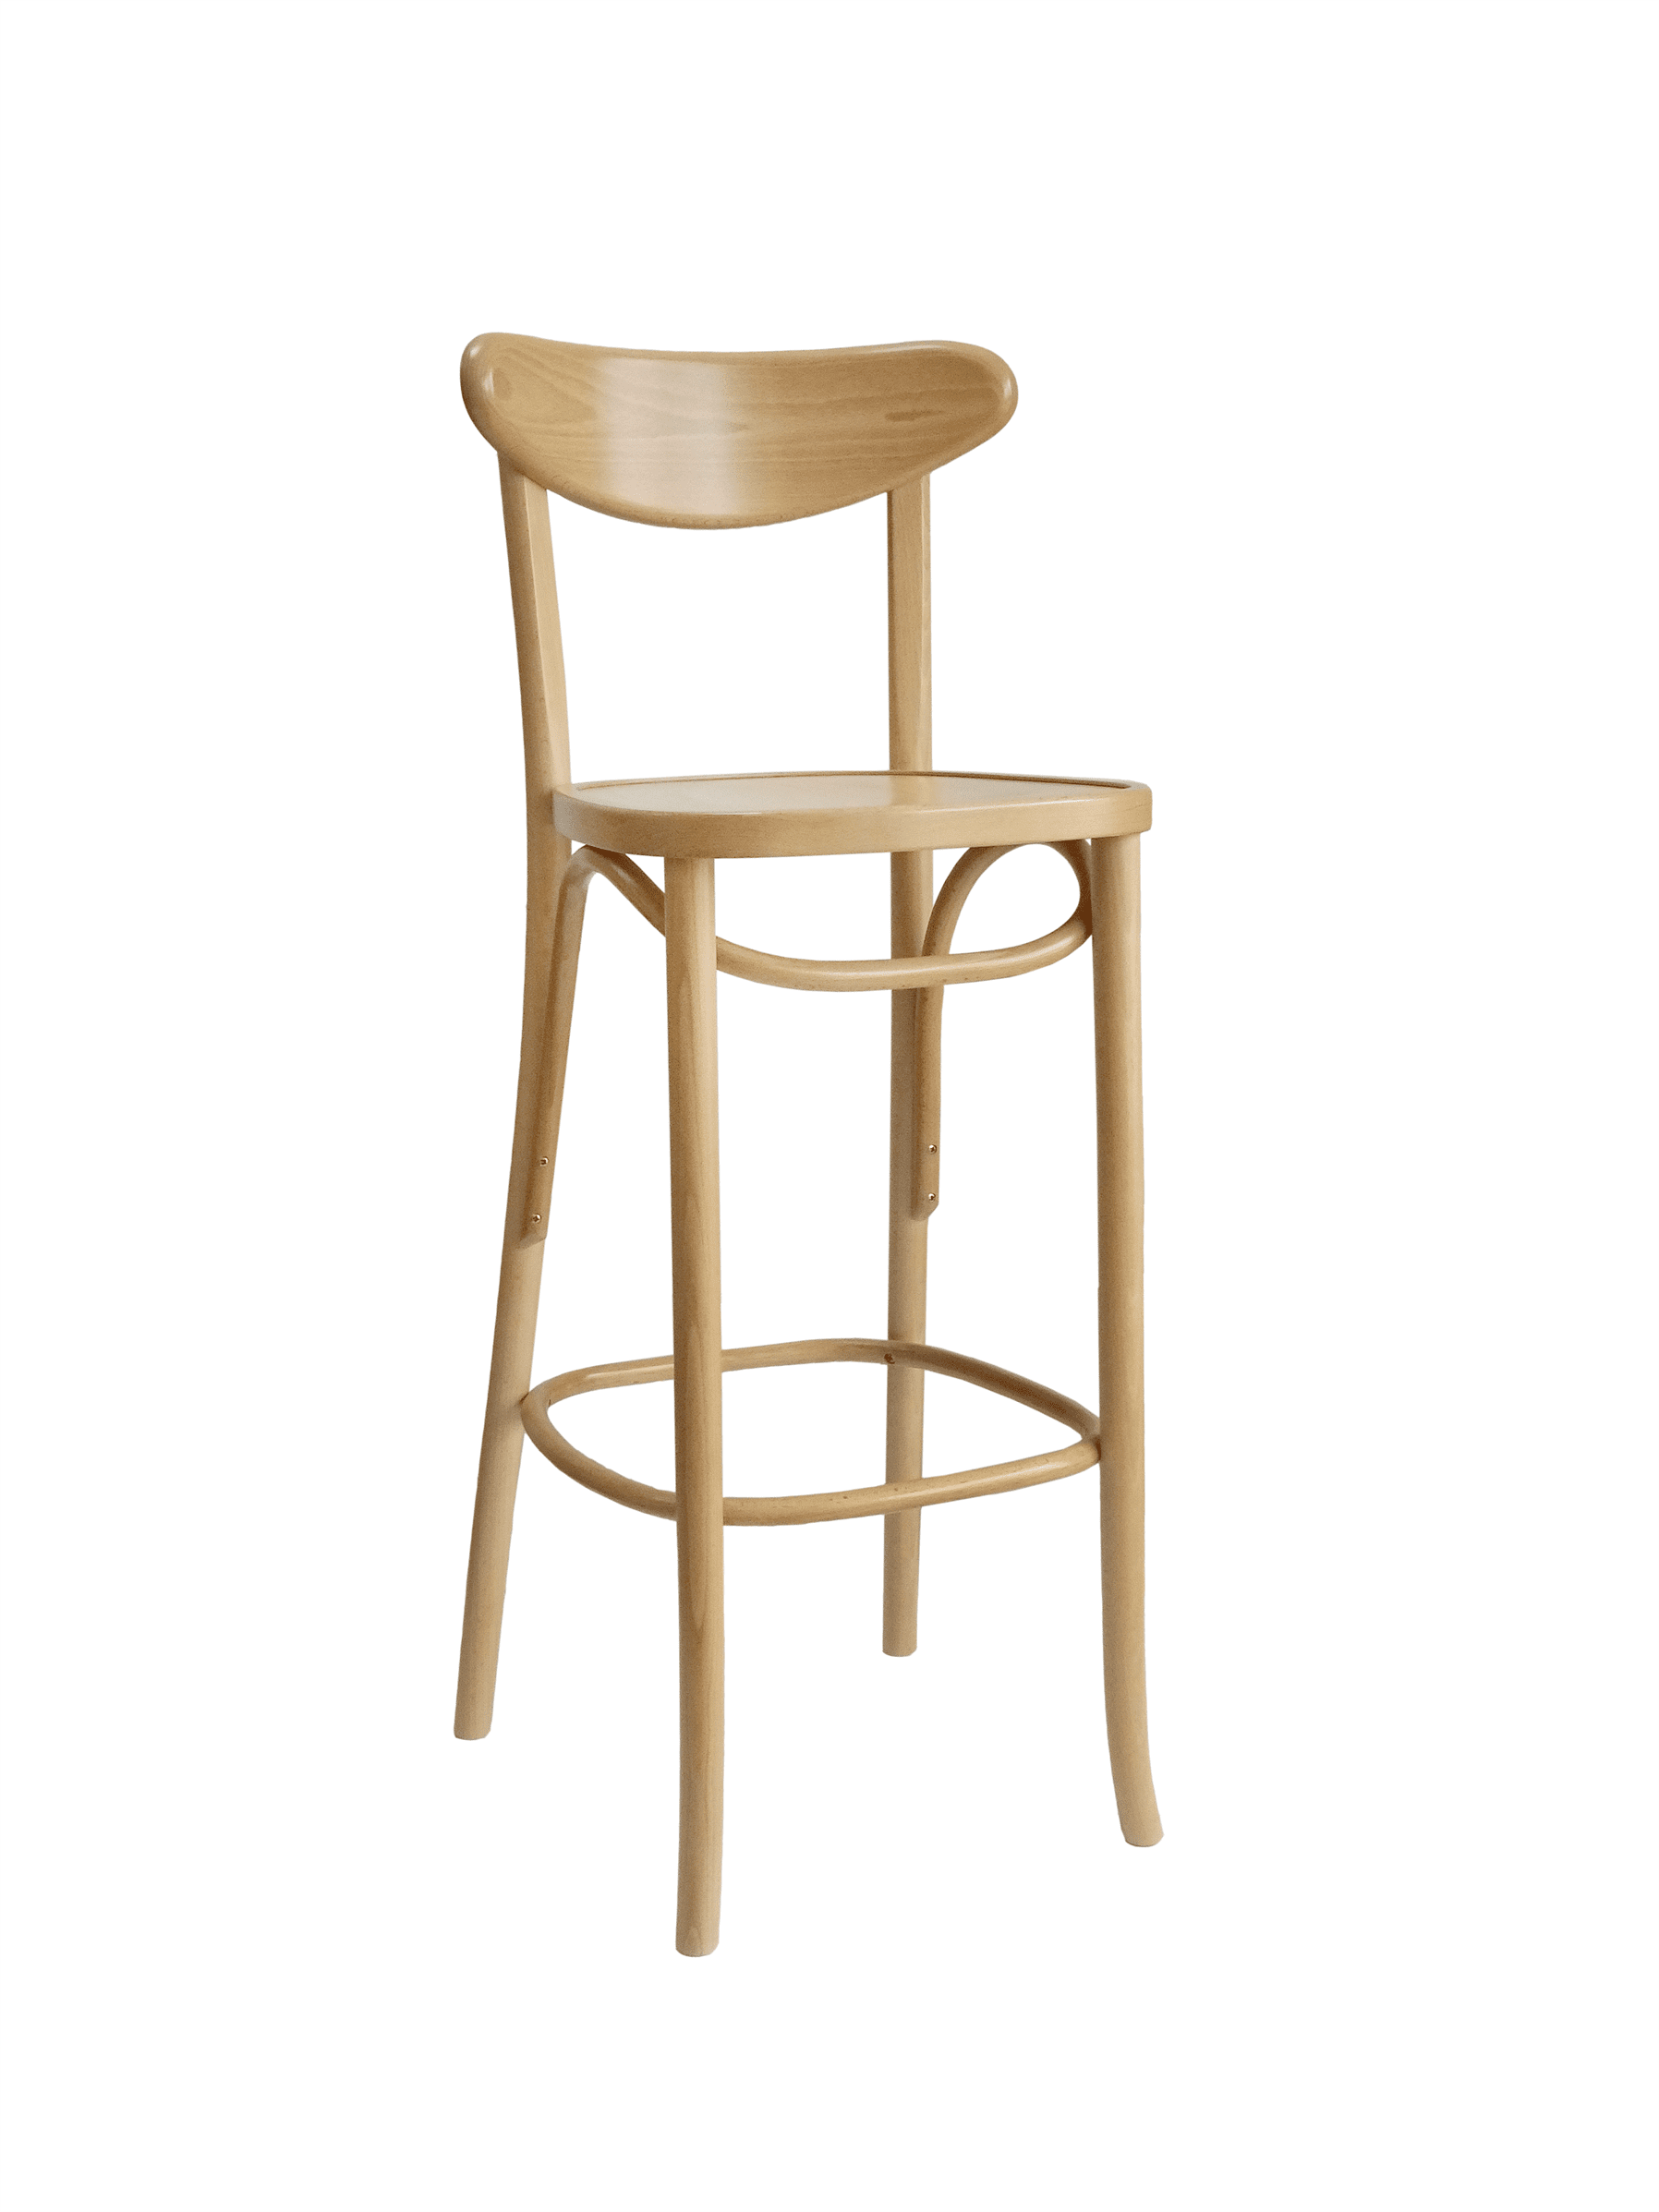 Handel bar stool raw